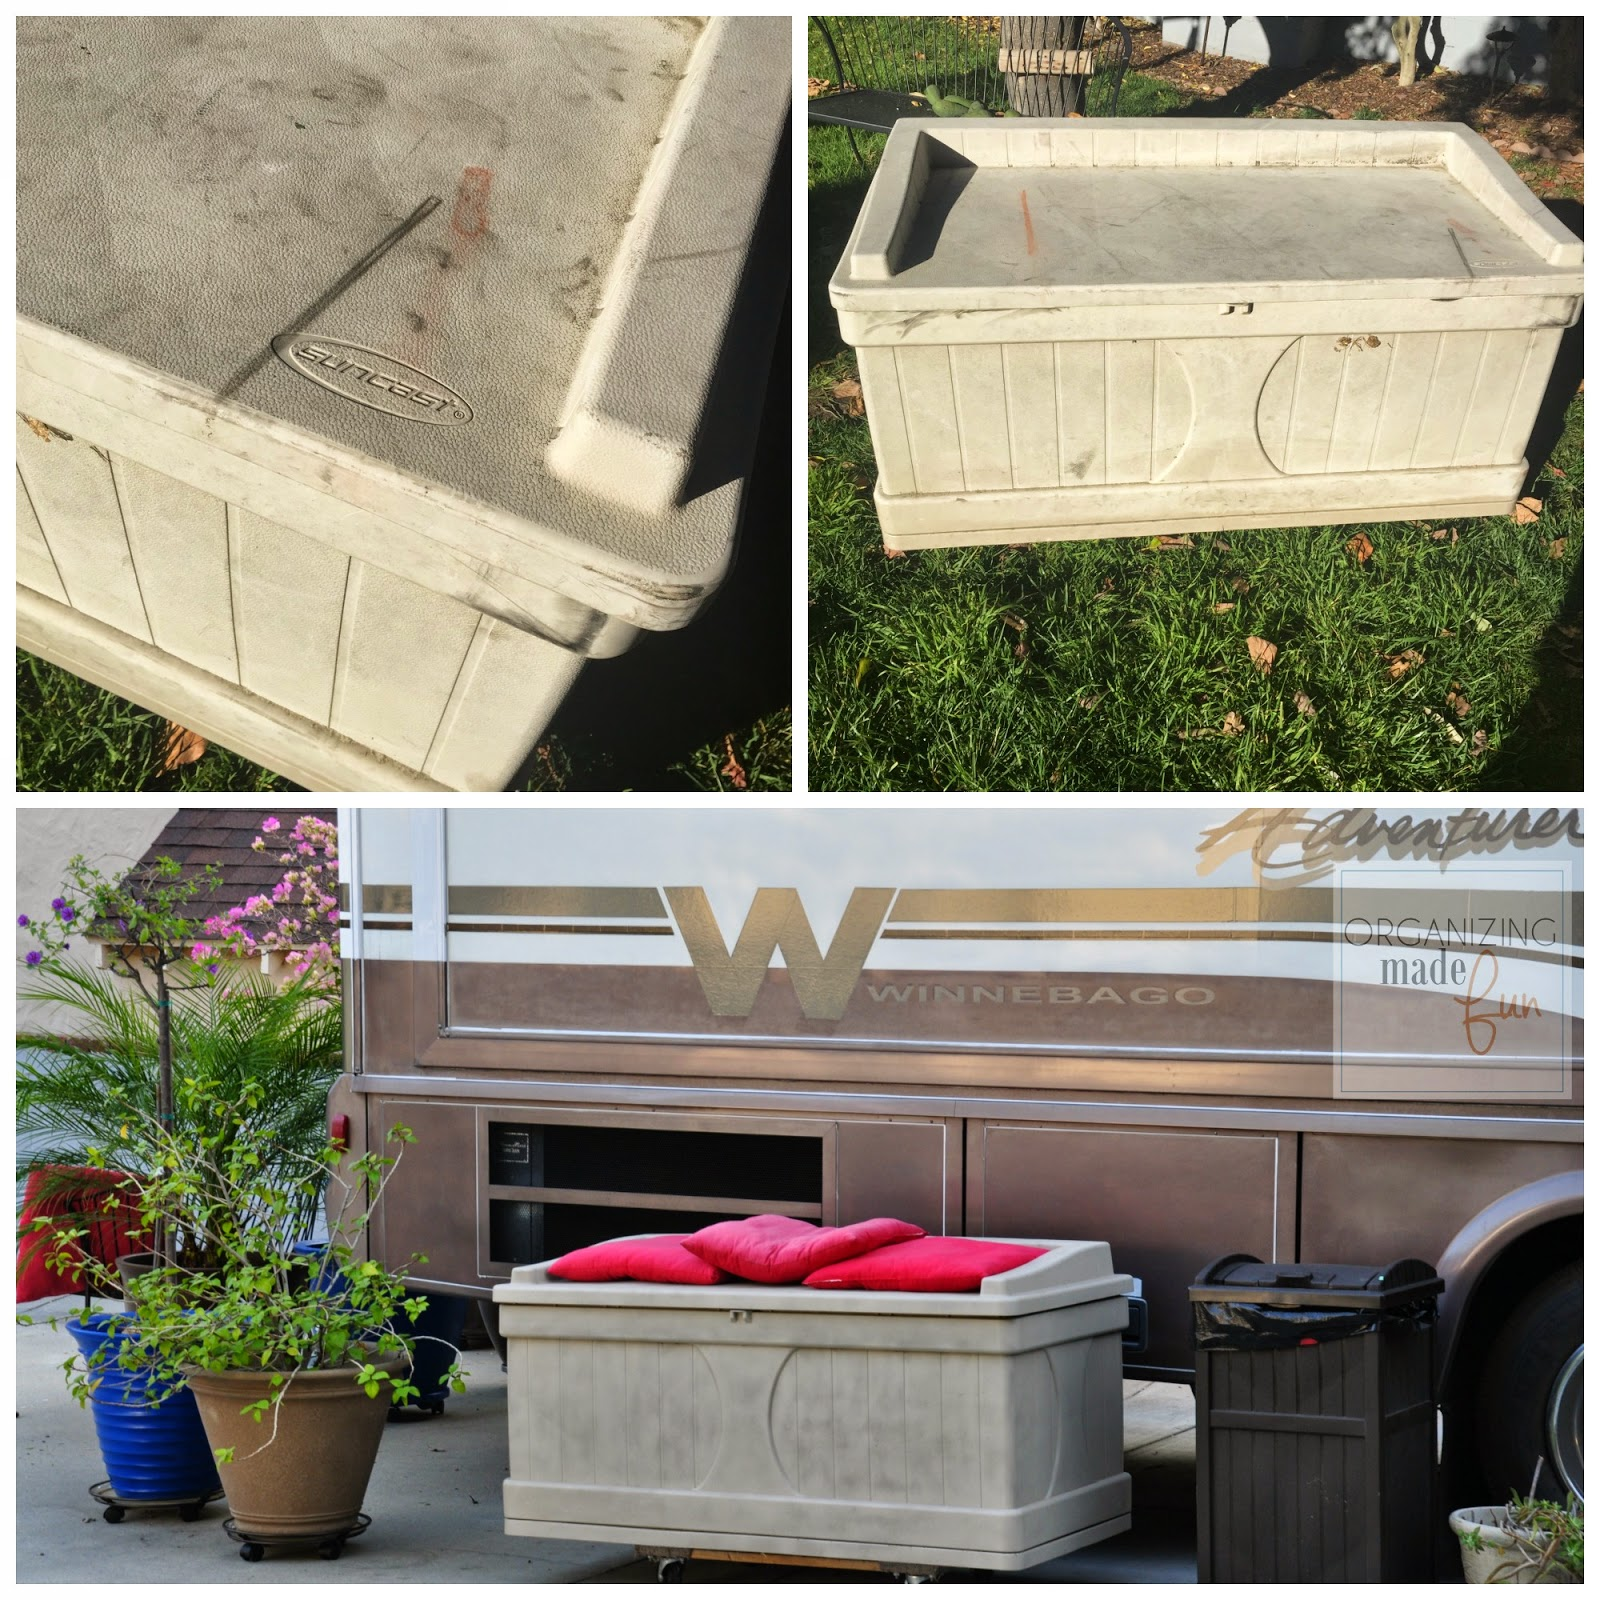 Plastic Storage bench revived with spray paint :: OrganizingMadeFun.com